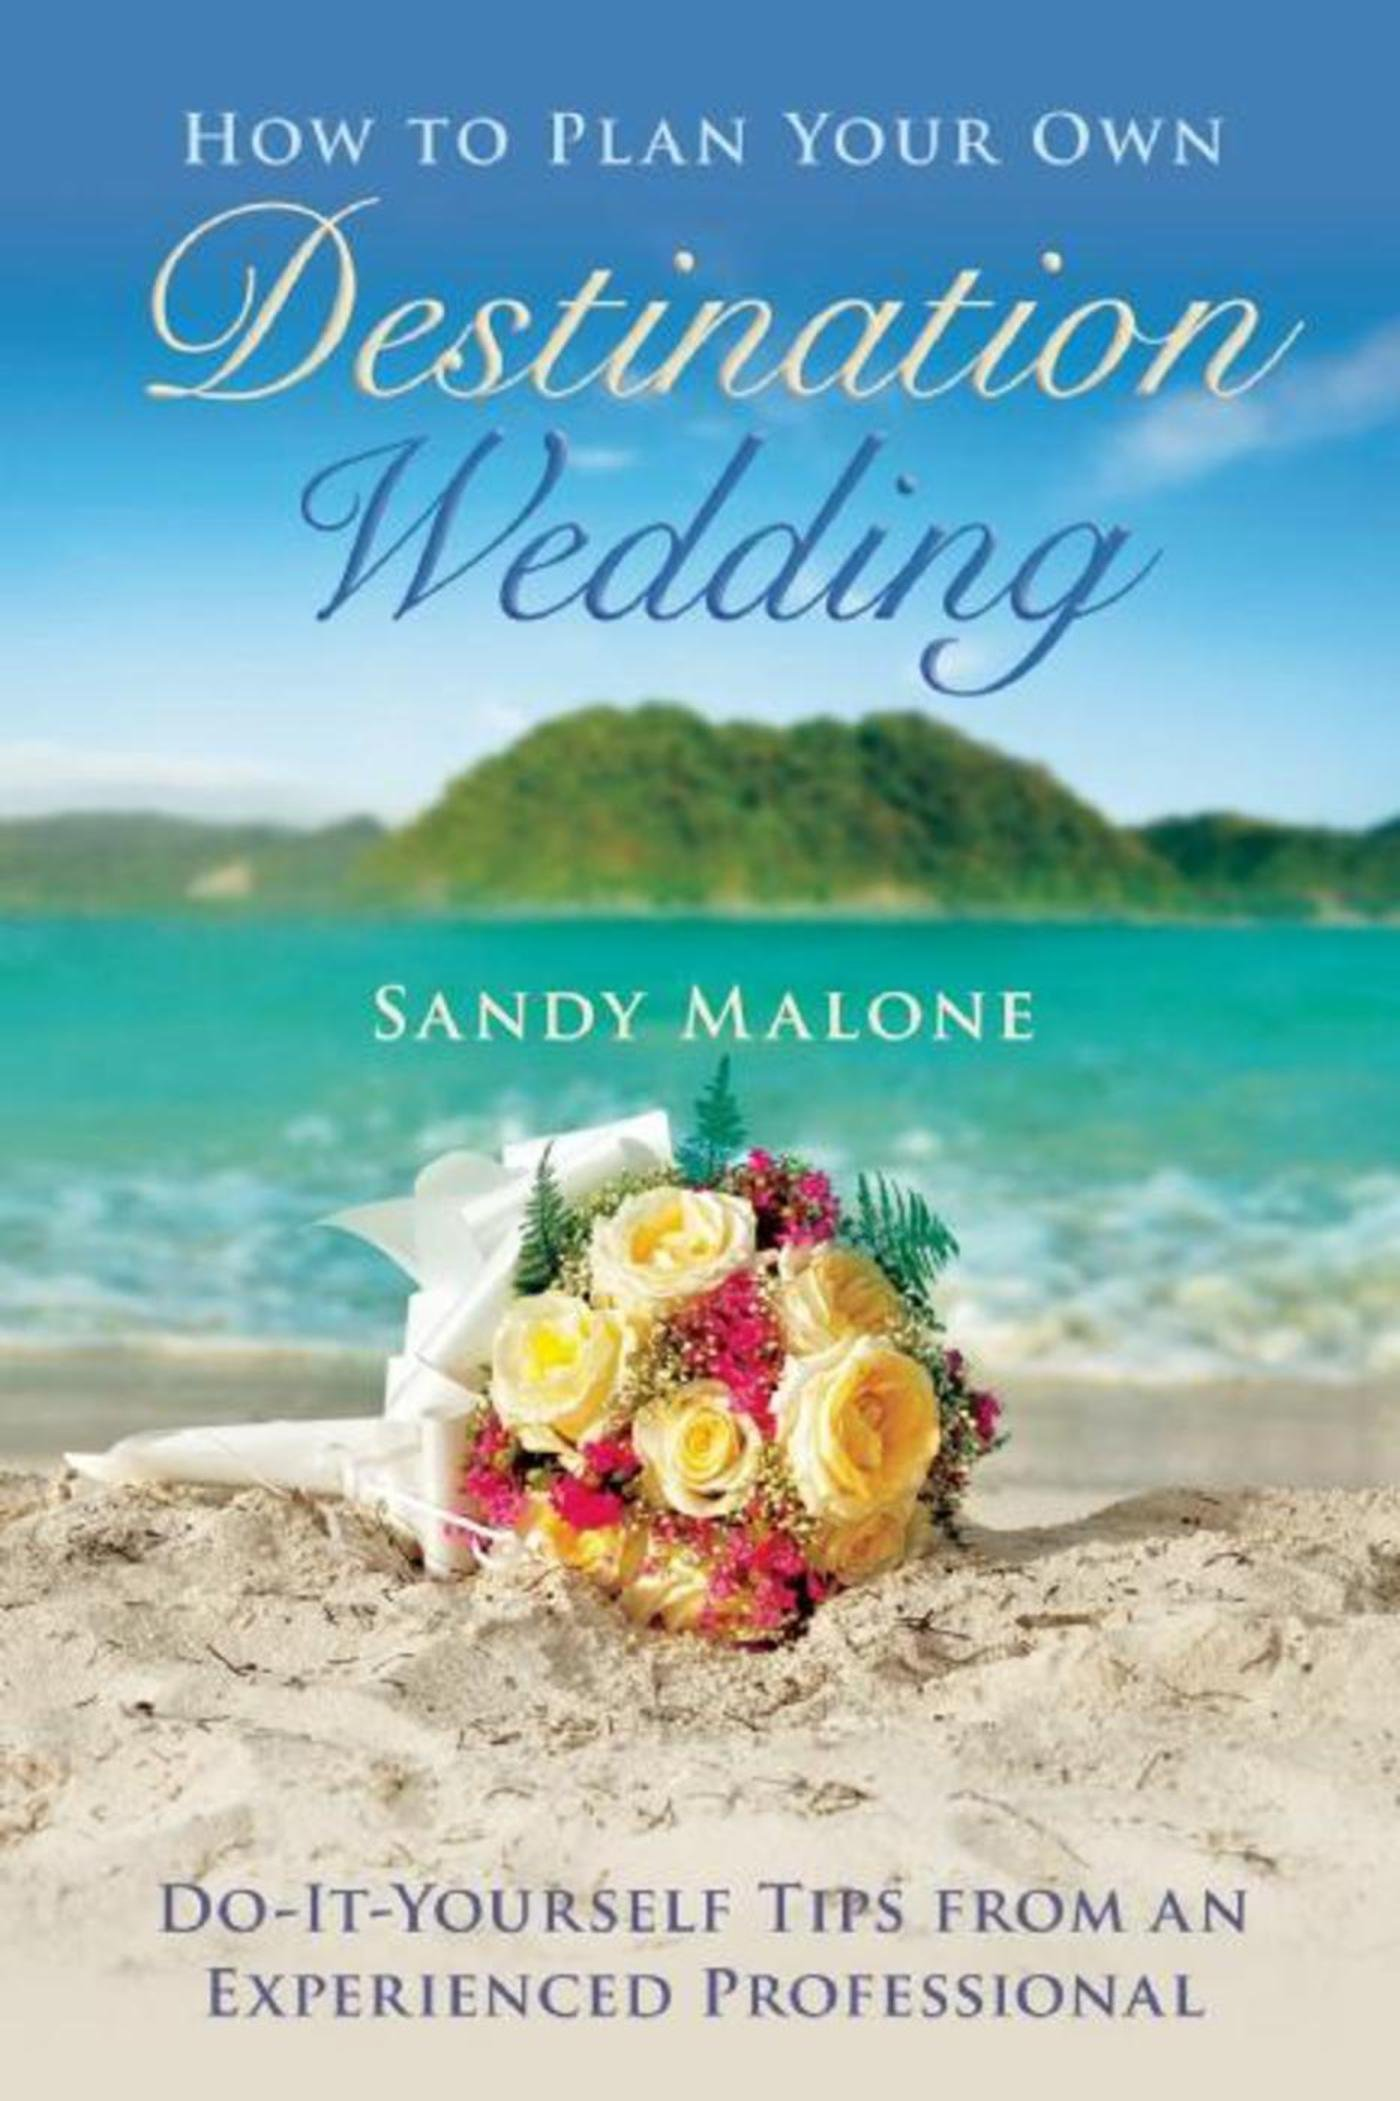 How to plan your own destination wedding do it yourself tips from how to plan your own destination wedding do it yourself tips from an experienced professional sandy malone 9781634507530 amazon books junglespirit Image collections